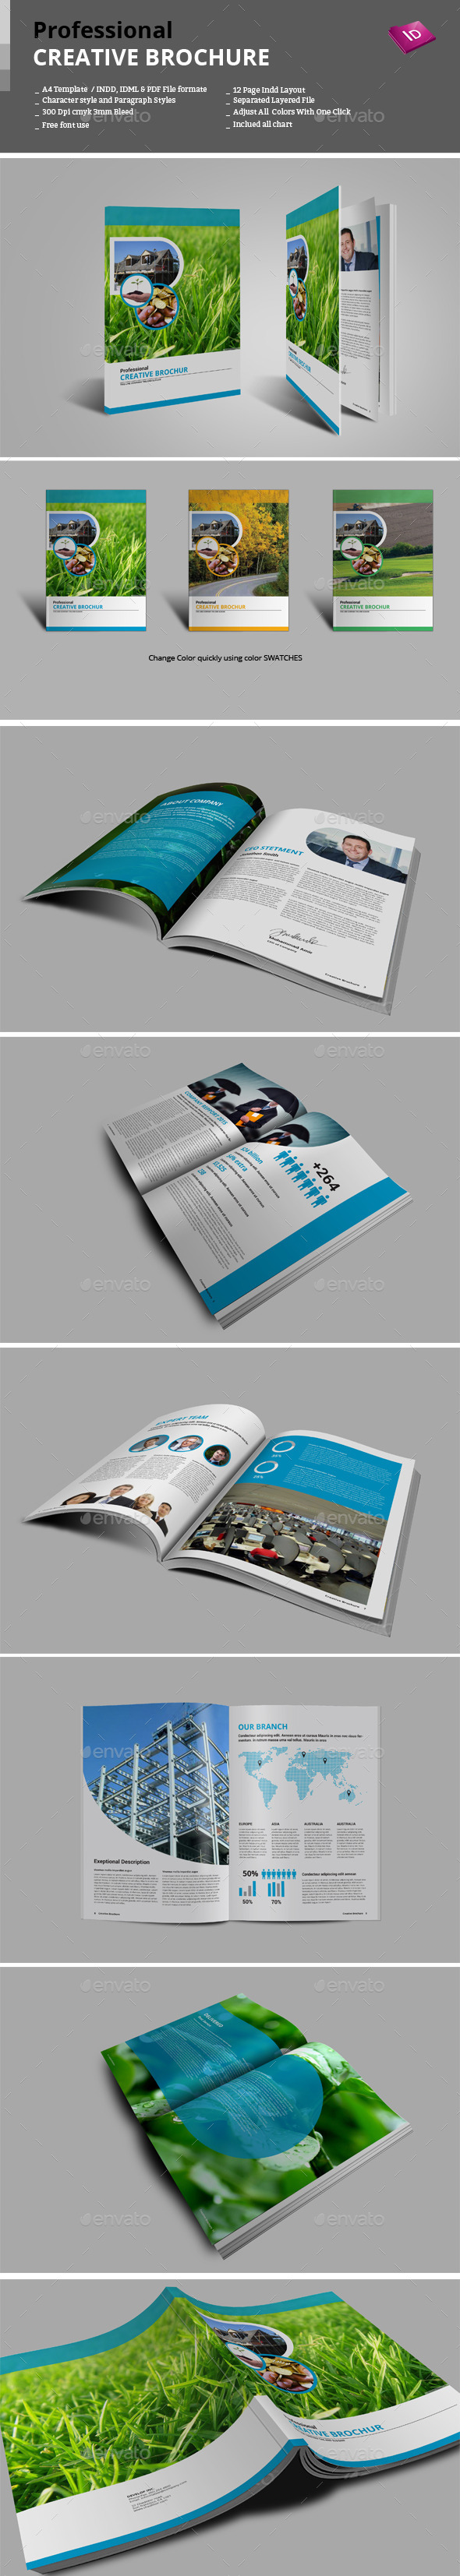 GraphicRiver Creative Brochure 9272397